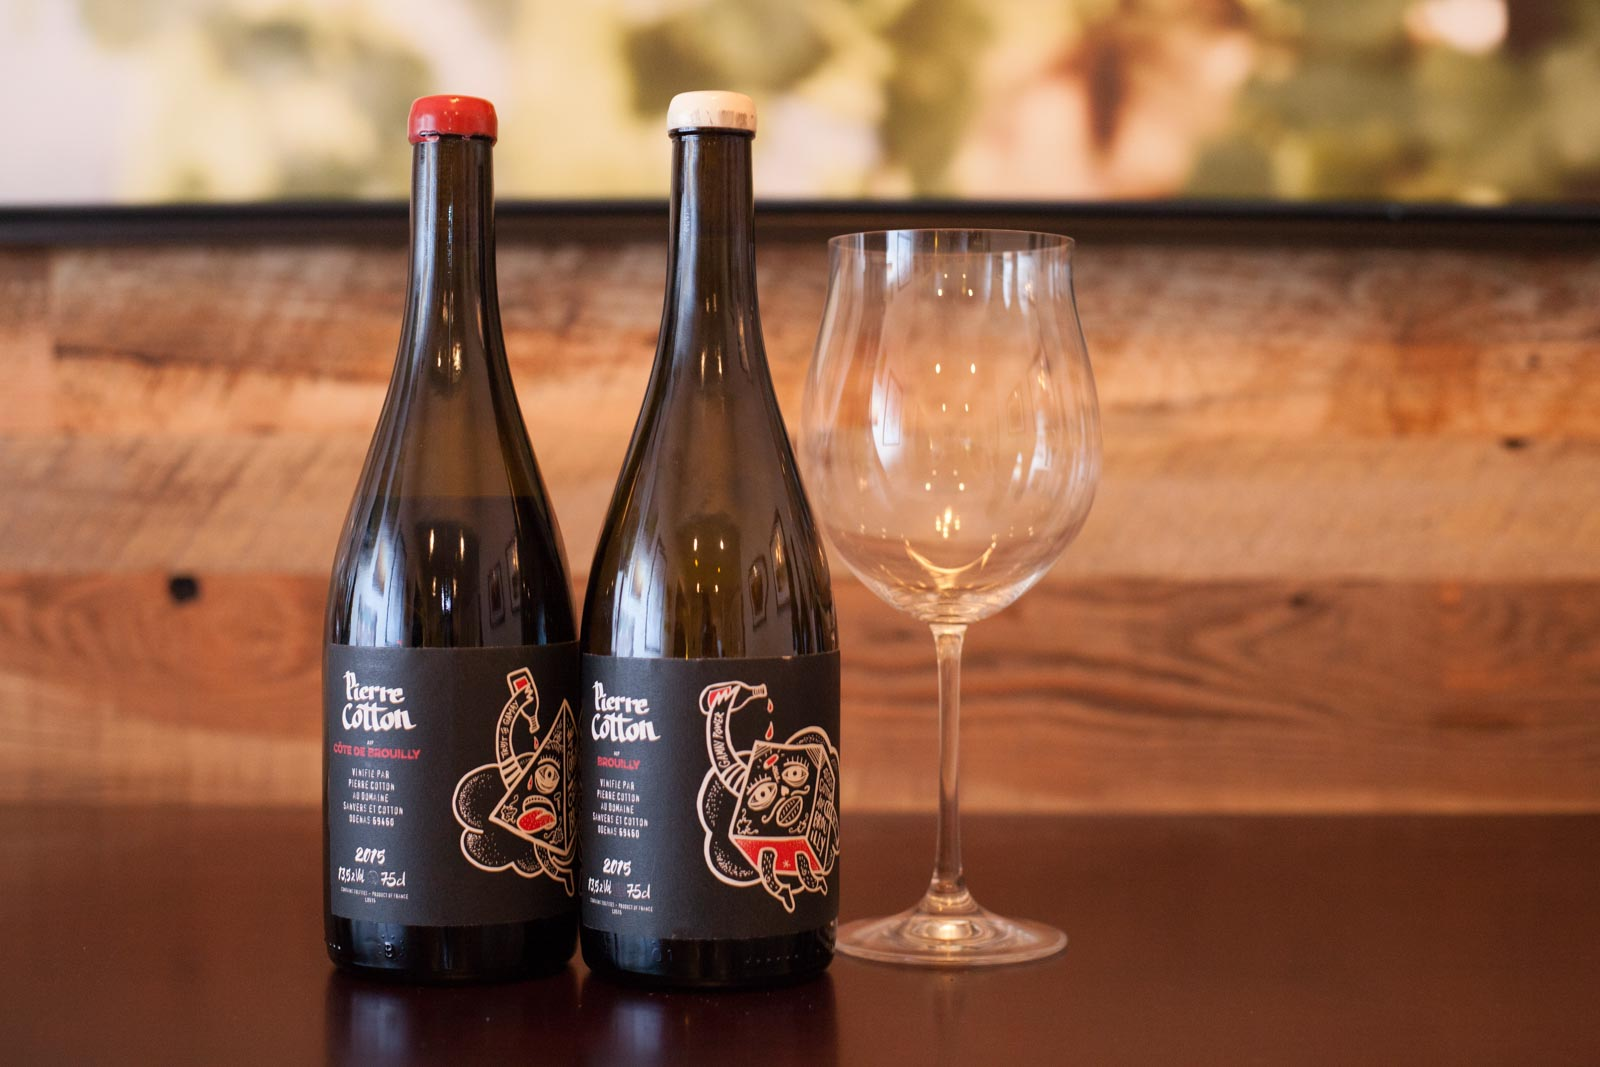 The wines of Pierre Cotton – Brouilly and Côte de Brouilly from Beaujolais. Thanksgiving wine.